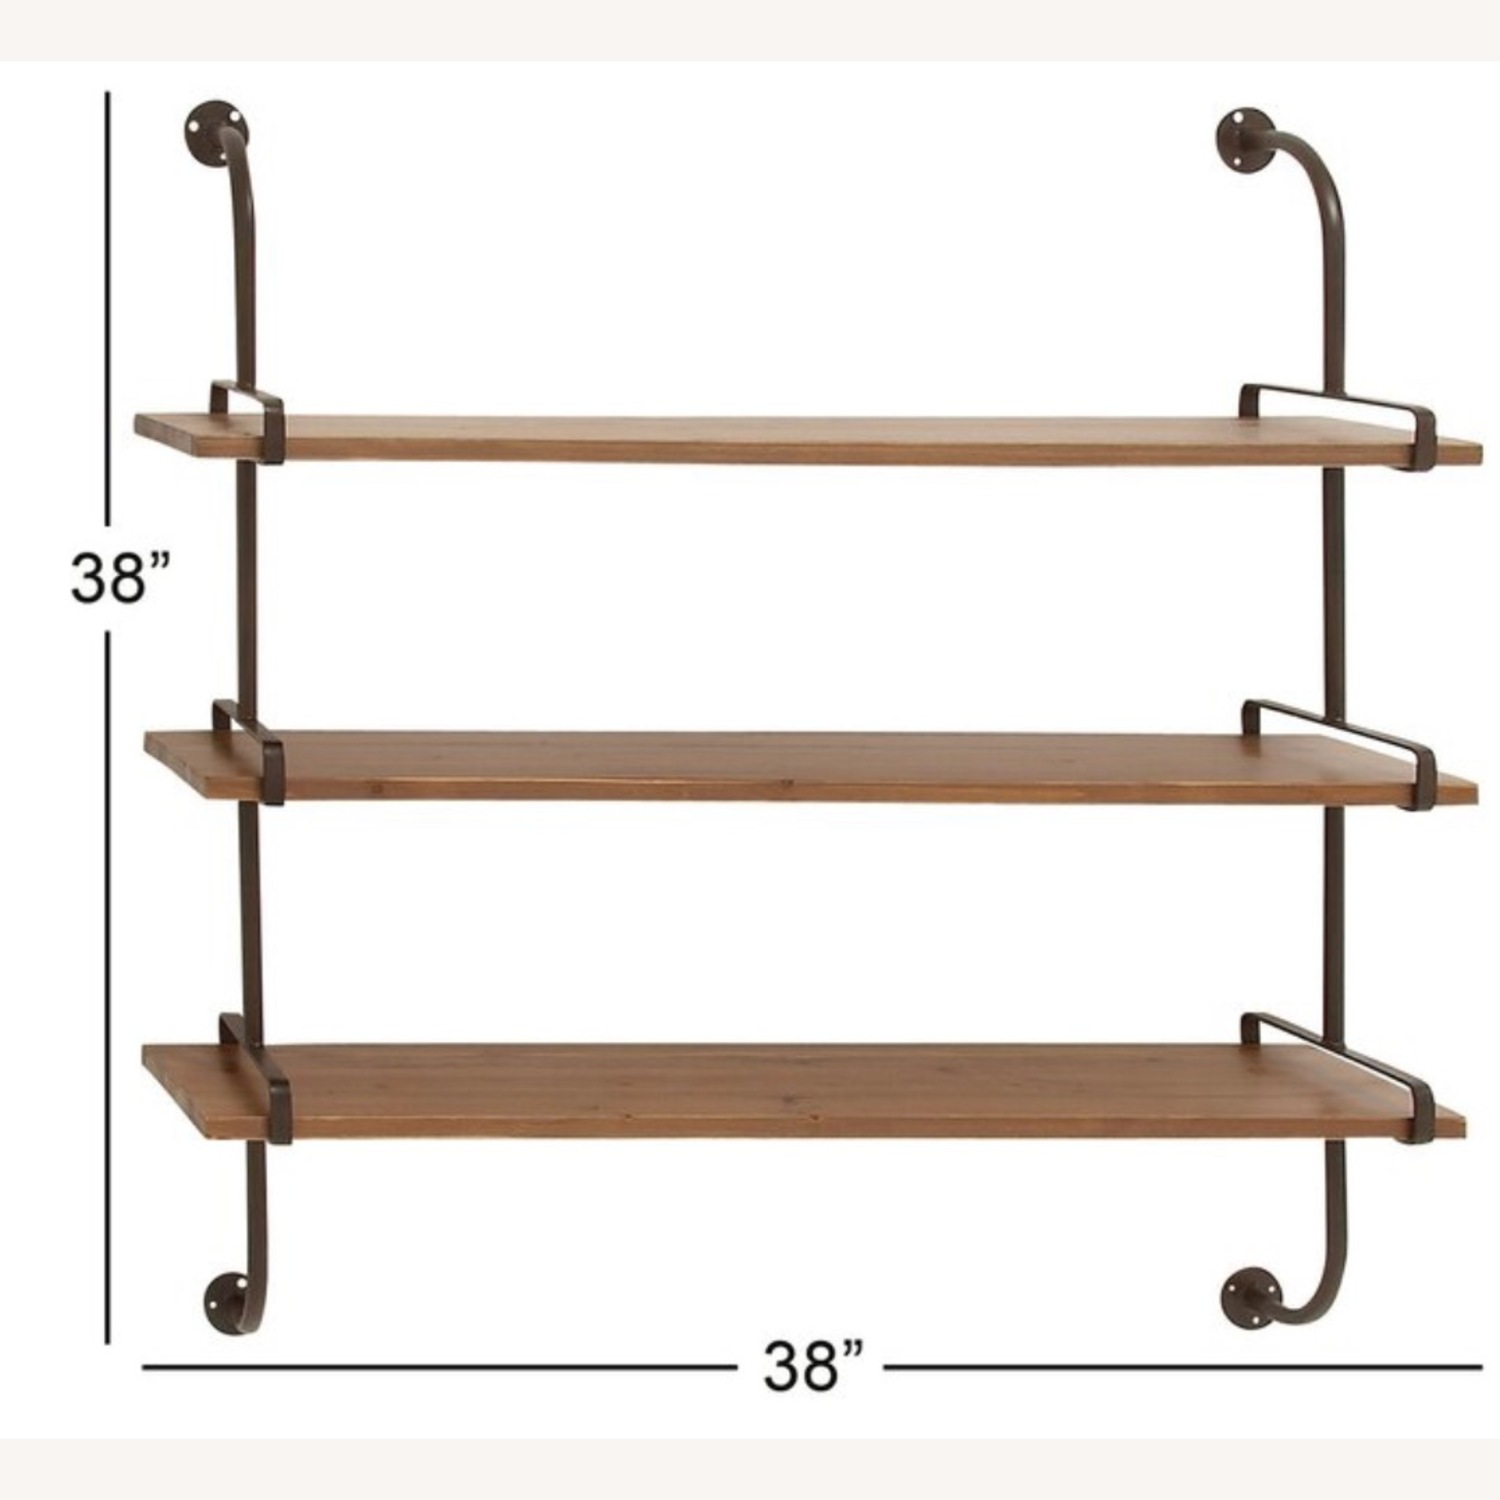 Wayfair Rustic Wood and Metal Wall Shelf - image-3